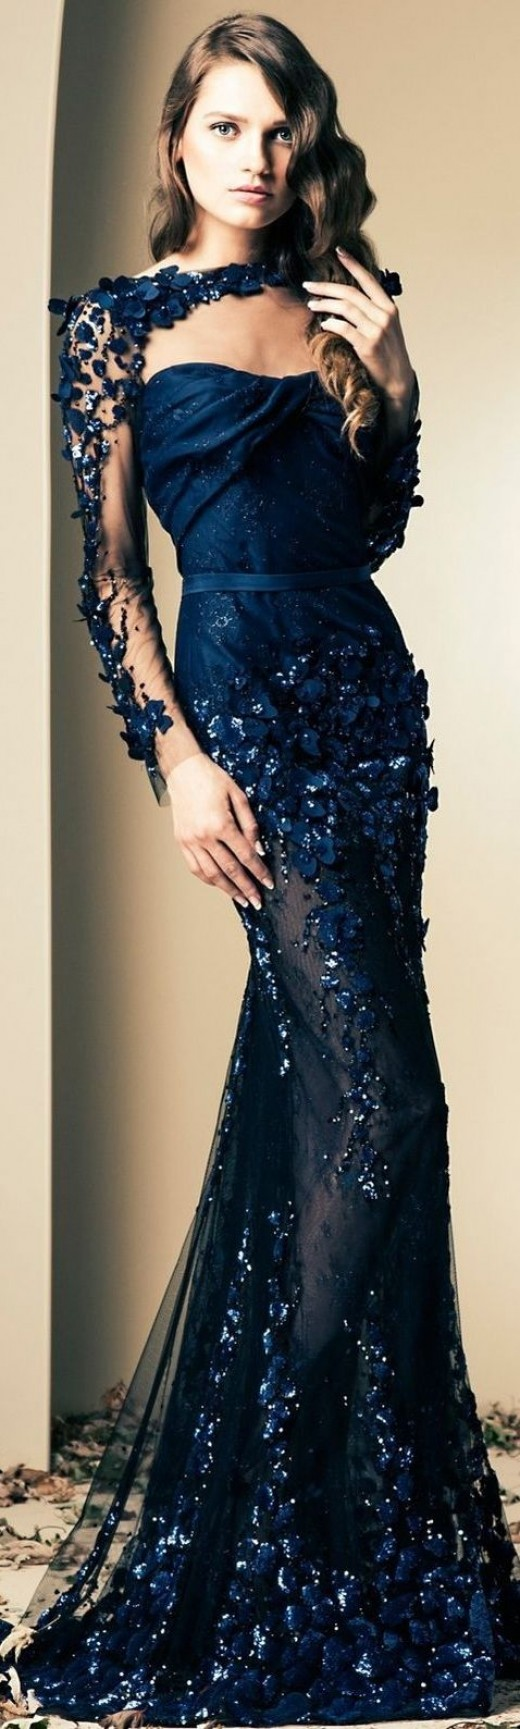 10 Ridiculously Gorgeous Gowns by Ziad Nakad | Midnight blue, Gowns ...